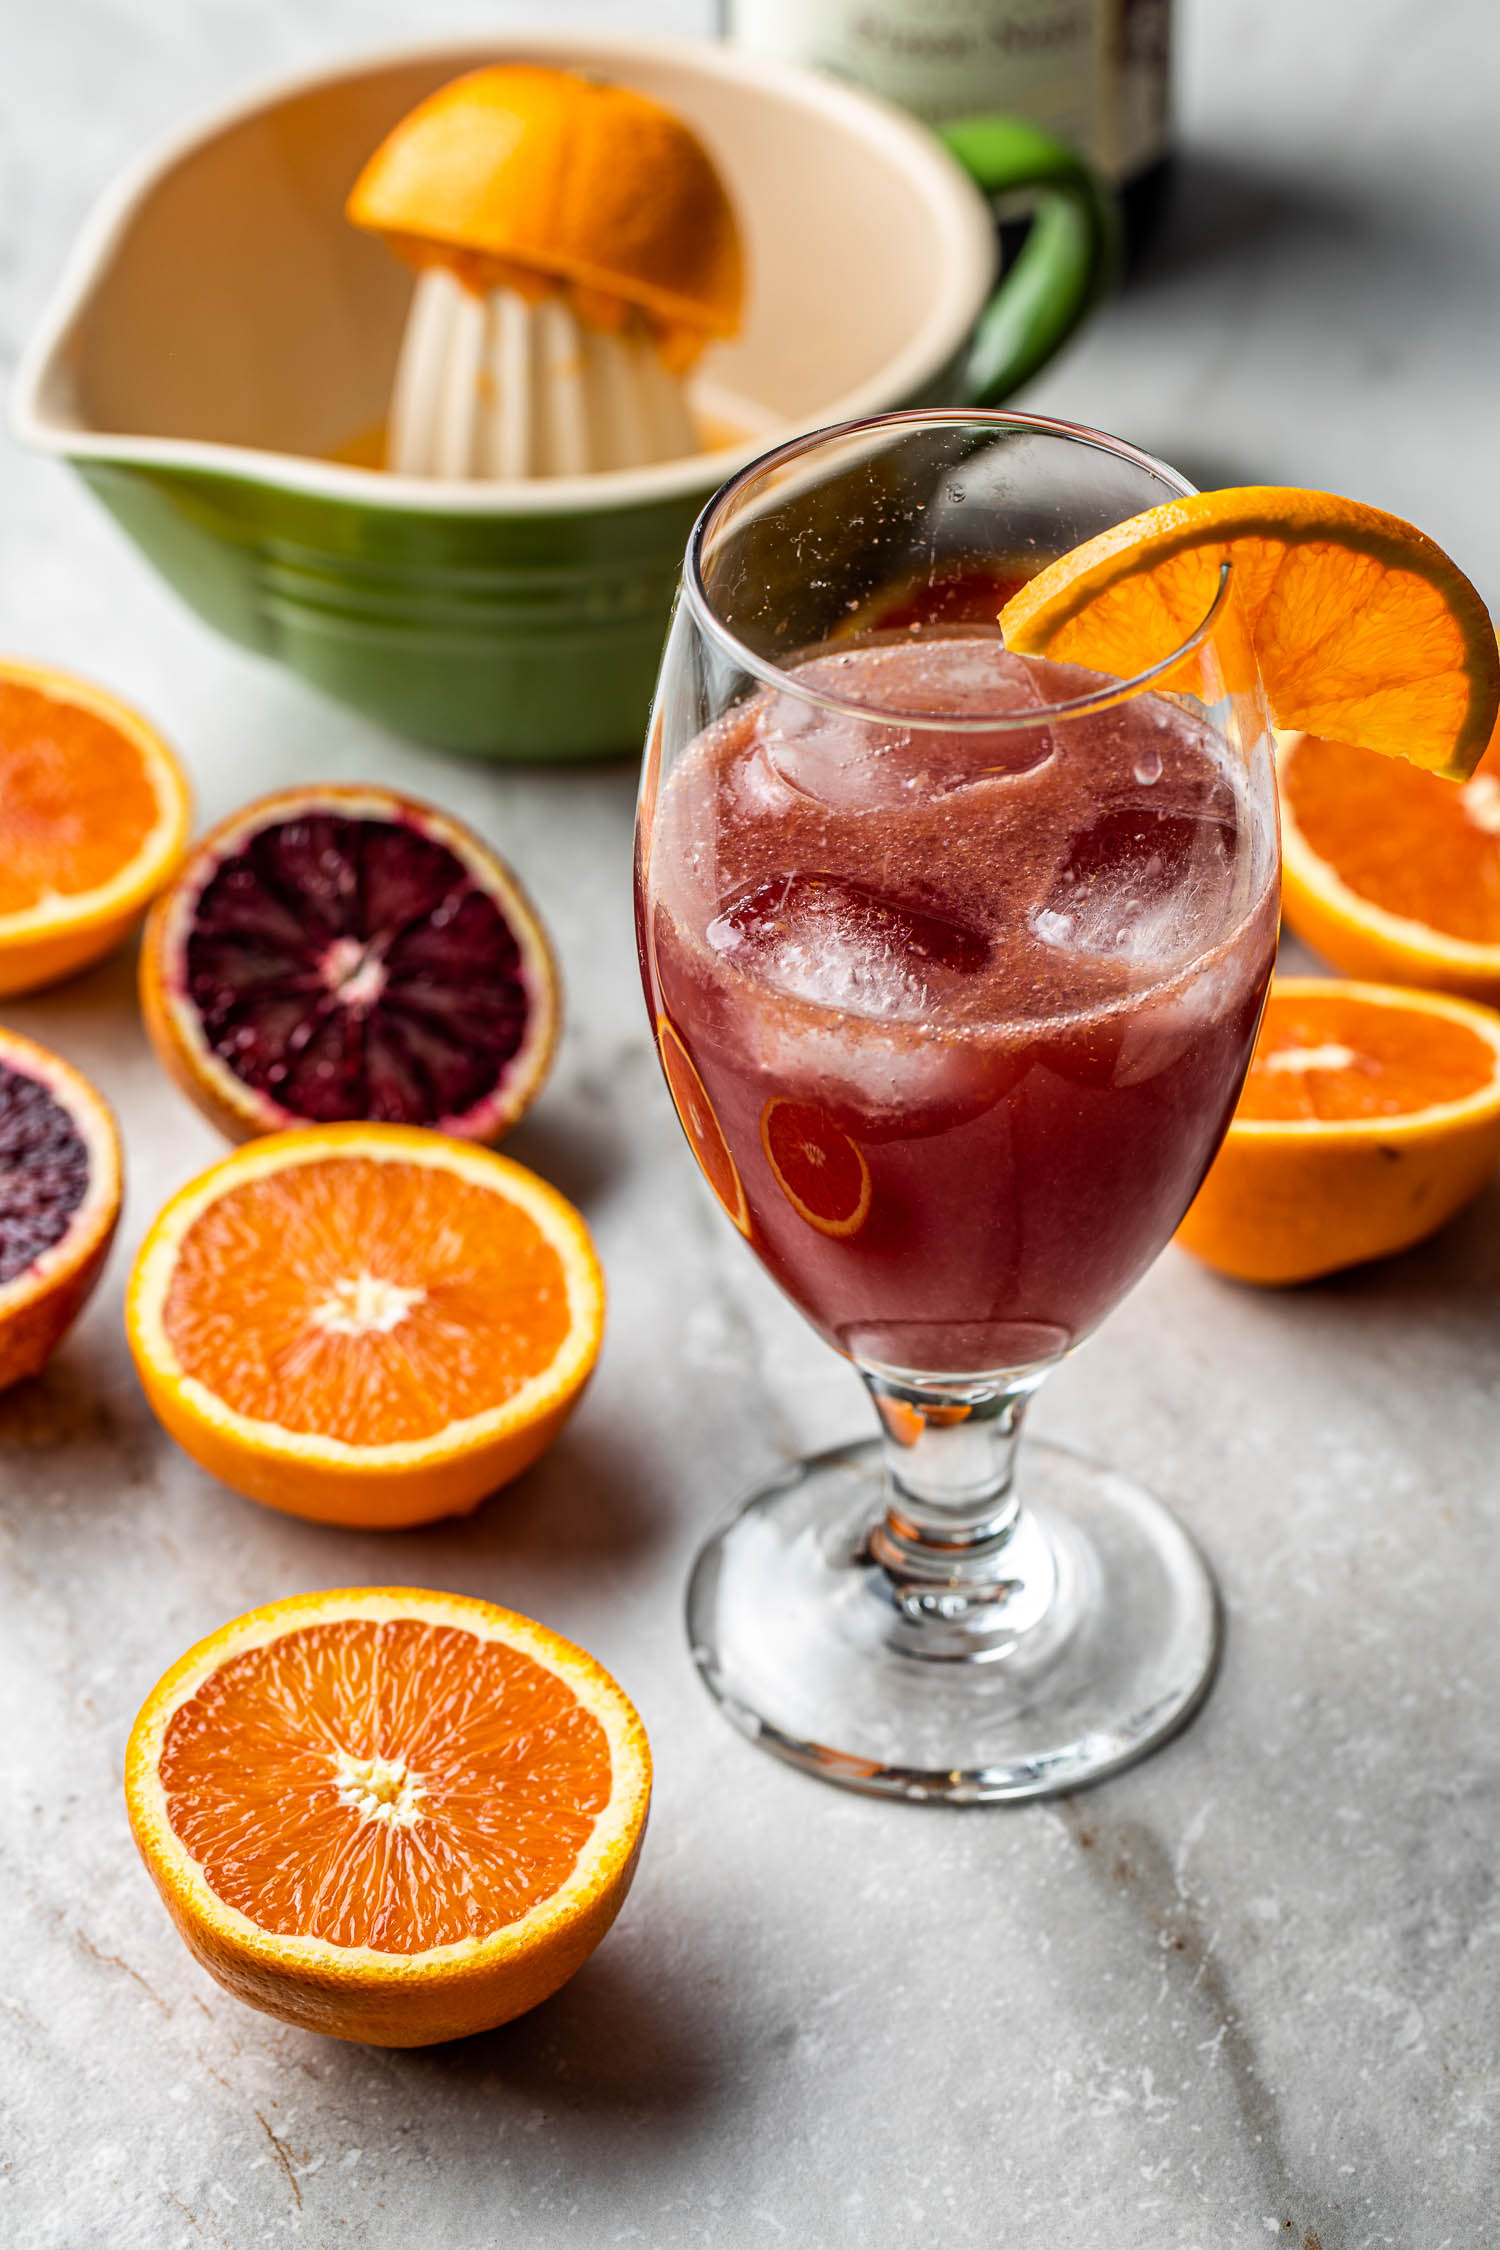 a purple red colored wine cocktail with fresh orange juice